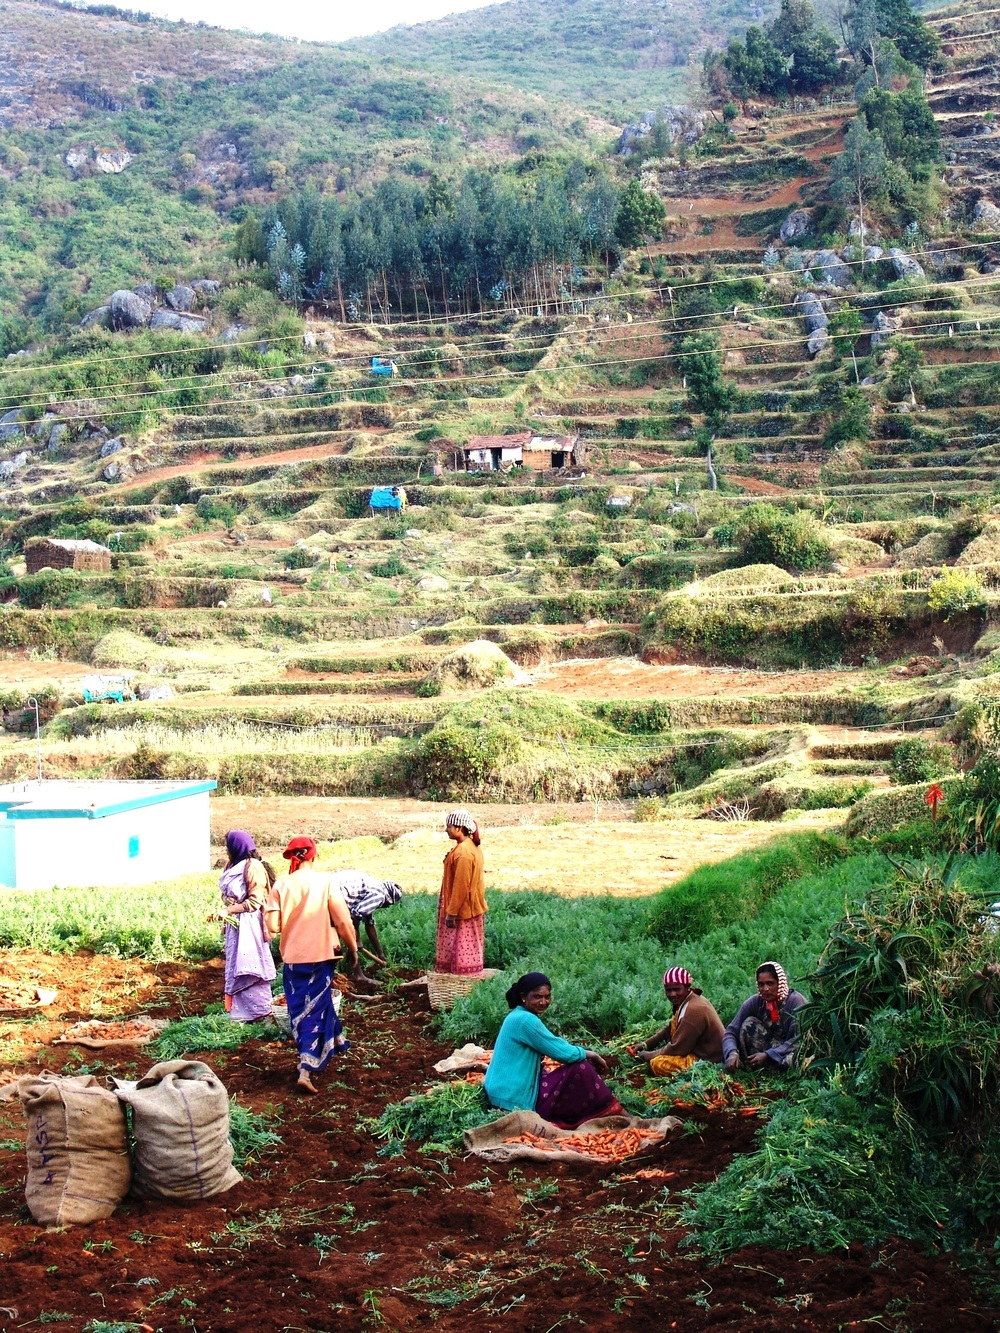 Intense land-use pressures... working with local communities is vital (photo by William Laurance)